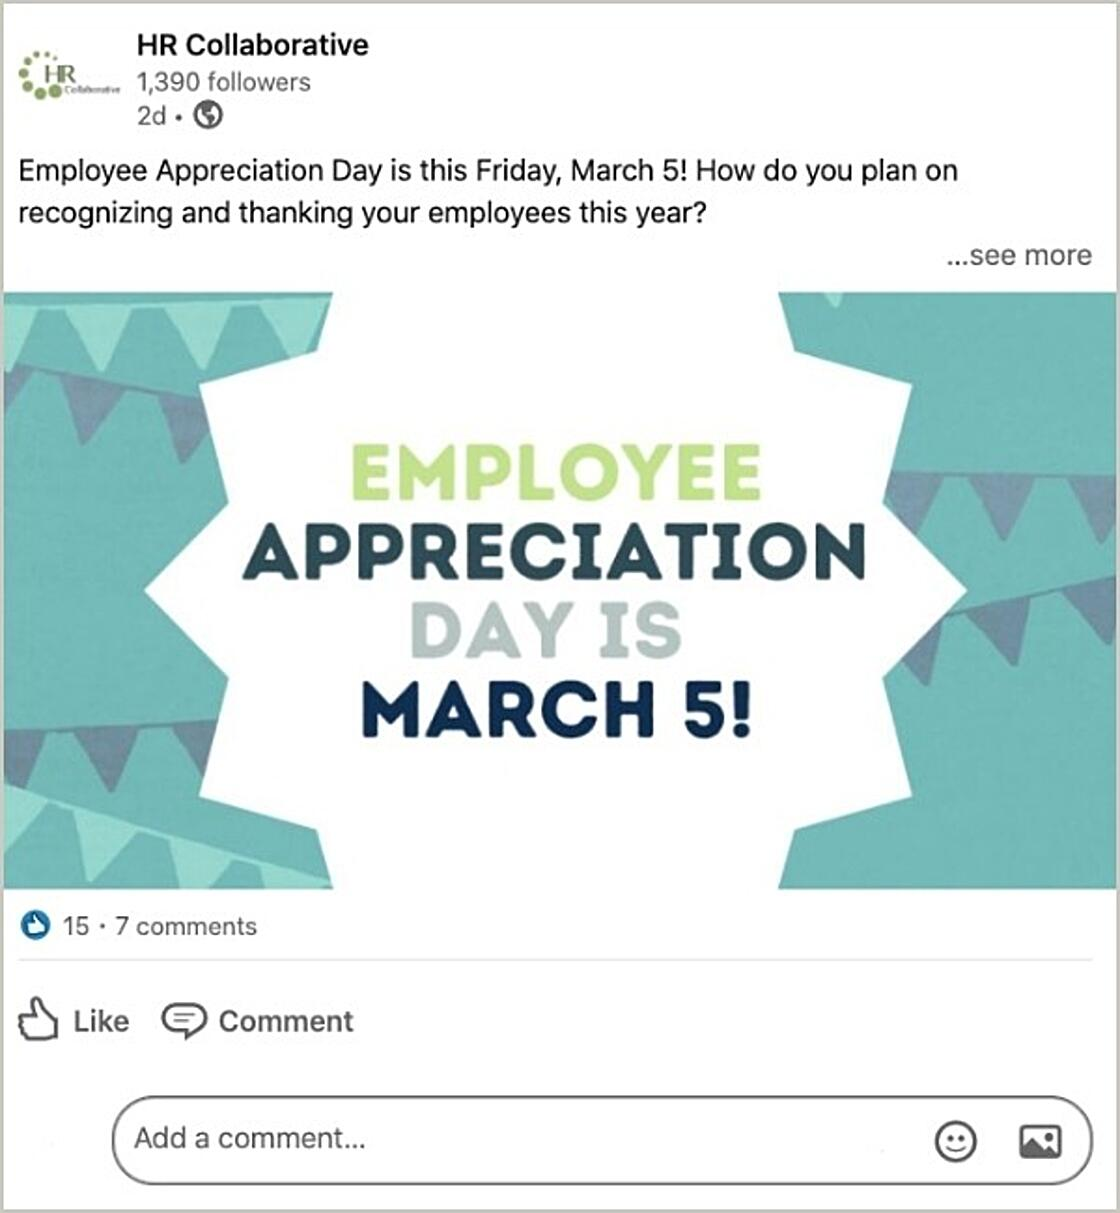 LinkedIn Post - How do you plan on recognizing and thanking your employees this year?